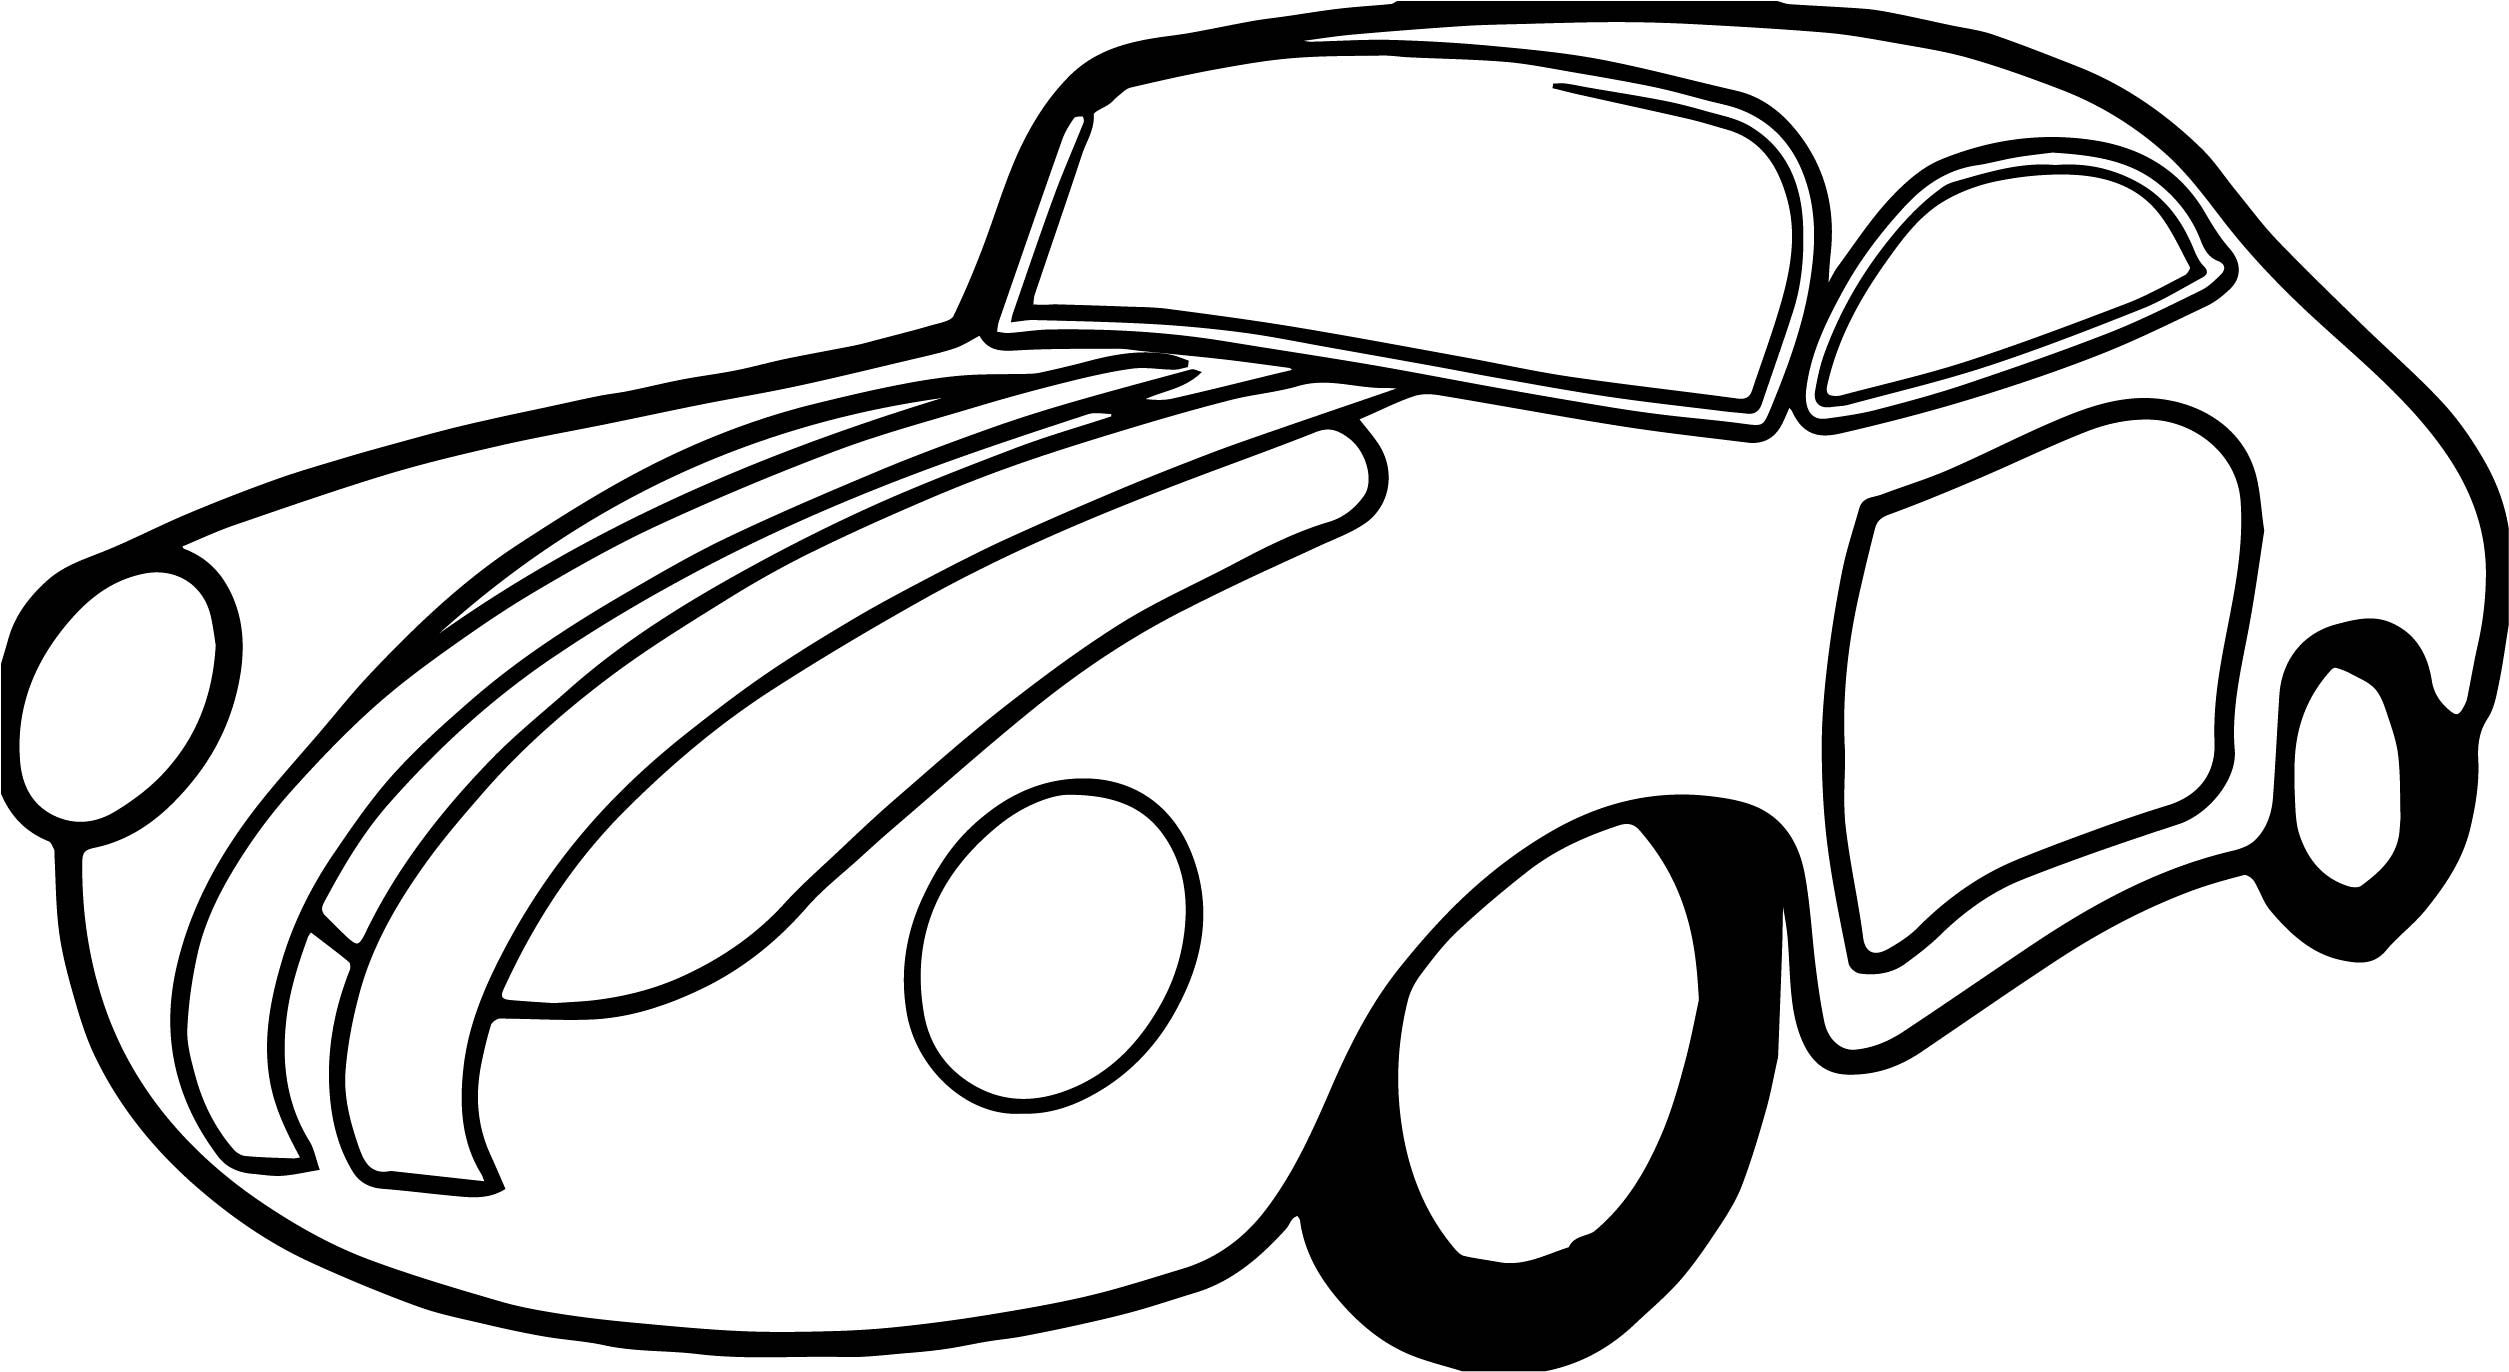 Cool Just Toy Car Coloring Page Cars Coloring Pages Coloring Pages Coloring Pages For Boys